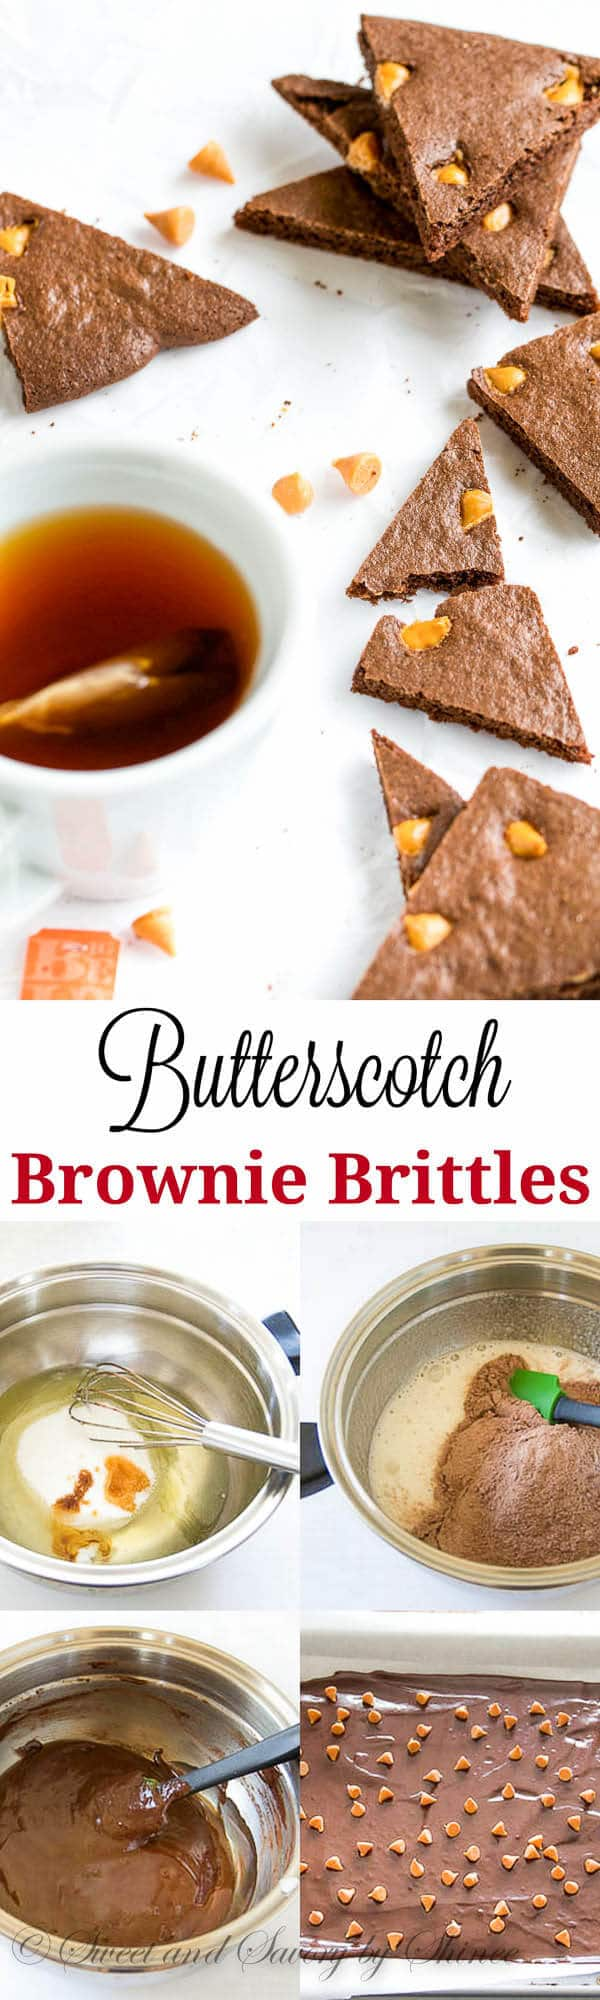 Crispy n' chewy butterscotch brownie brittles from scratch with extra boost of flavor! Totally addicting treats for your morning coffee.